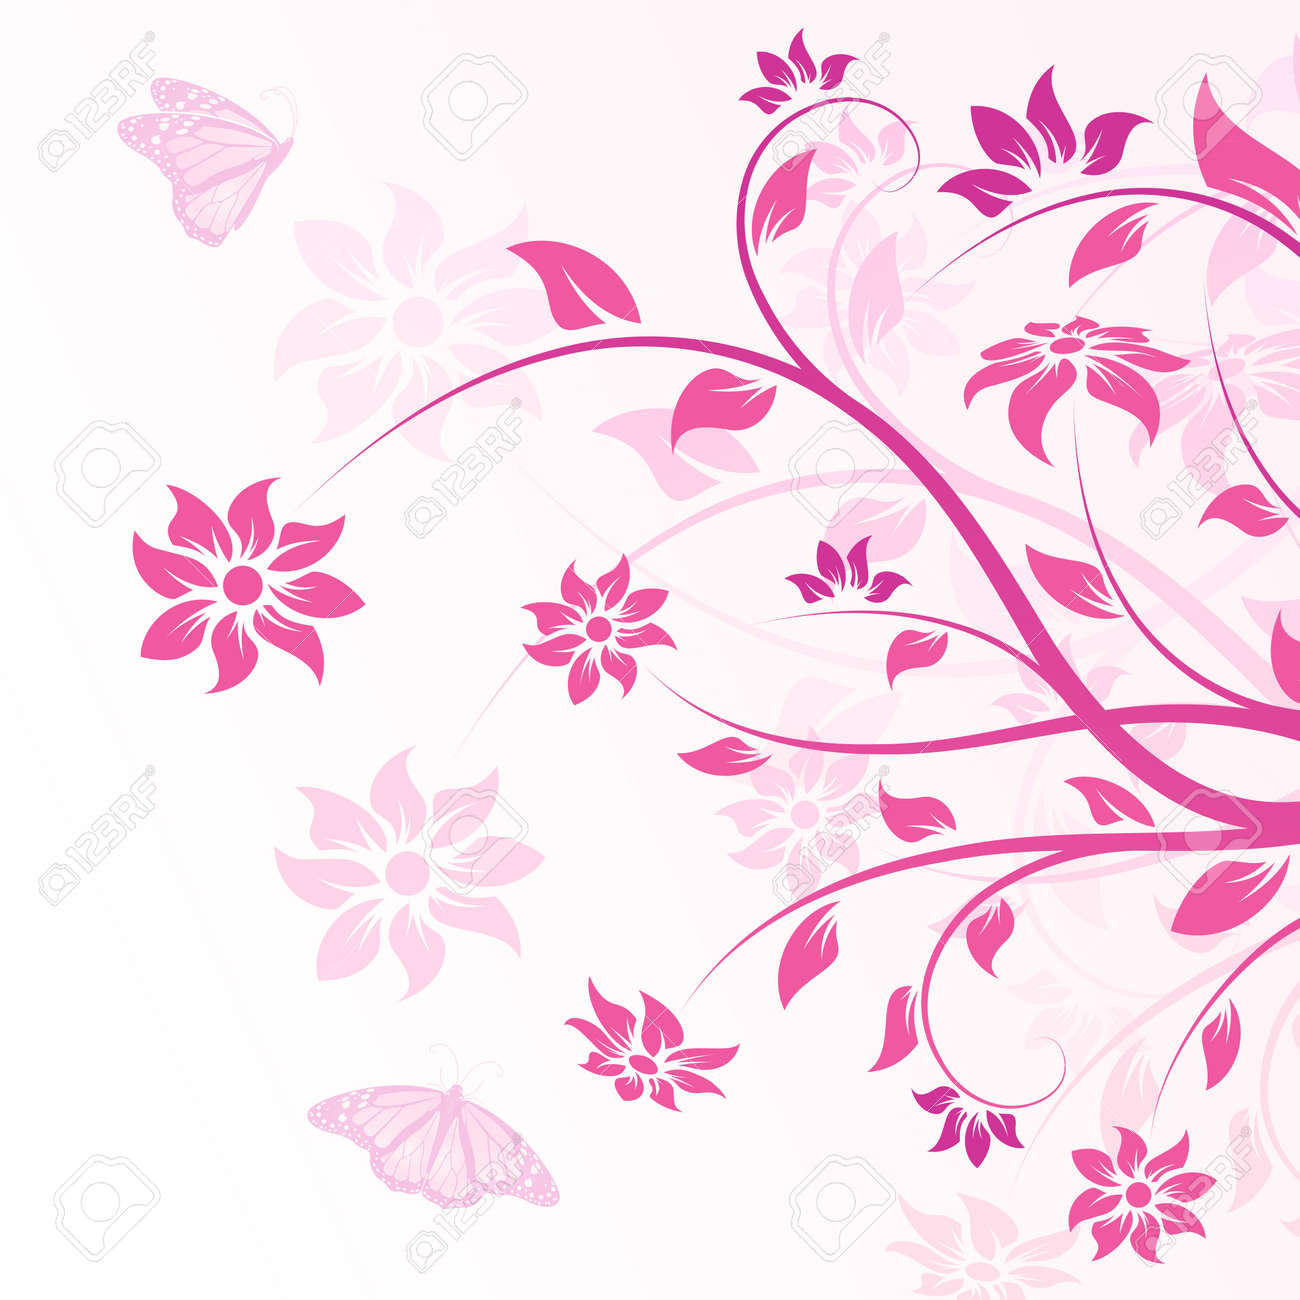 Abstract Background with flowers and butterfly for your design Stock Vector - 7448500